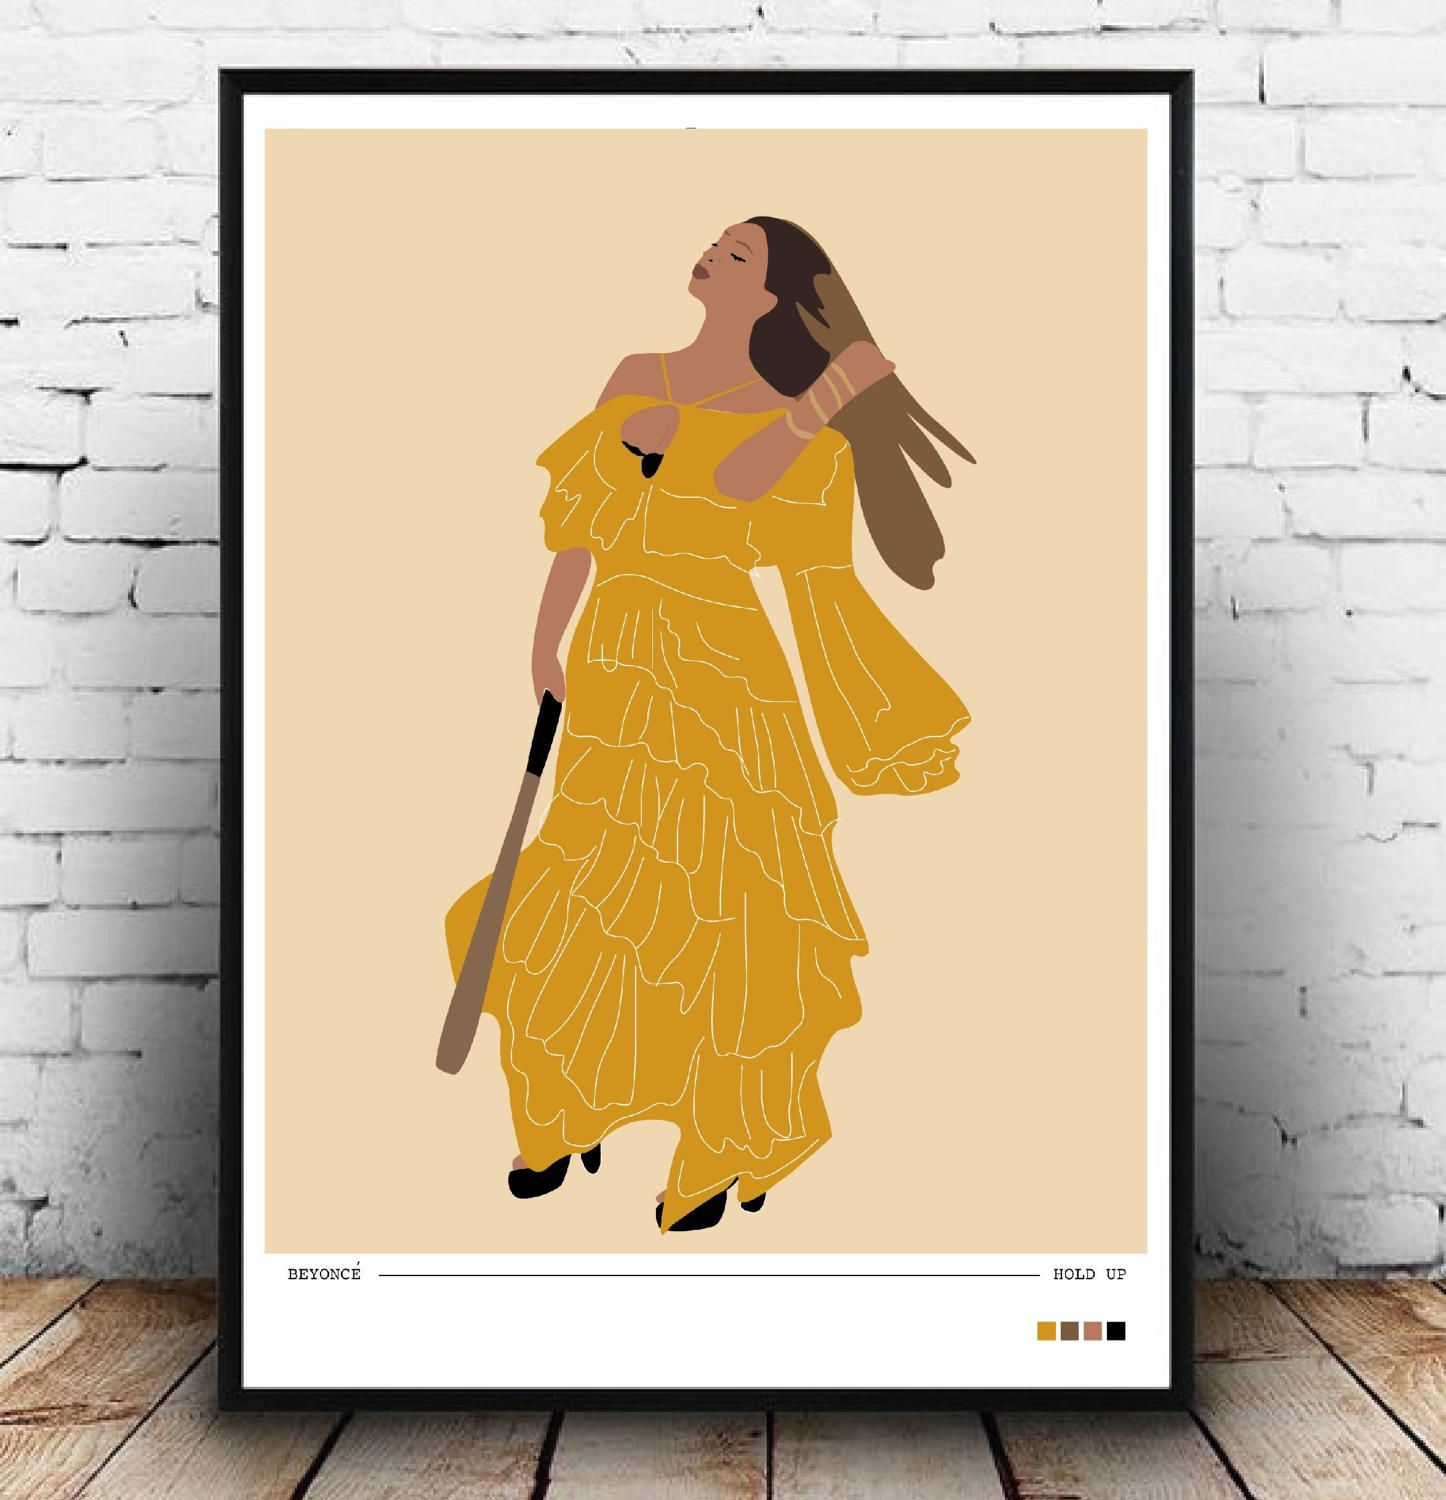 Beyonce sassy hold up wall decor, Beyonce boy bye sass wall art ...